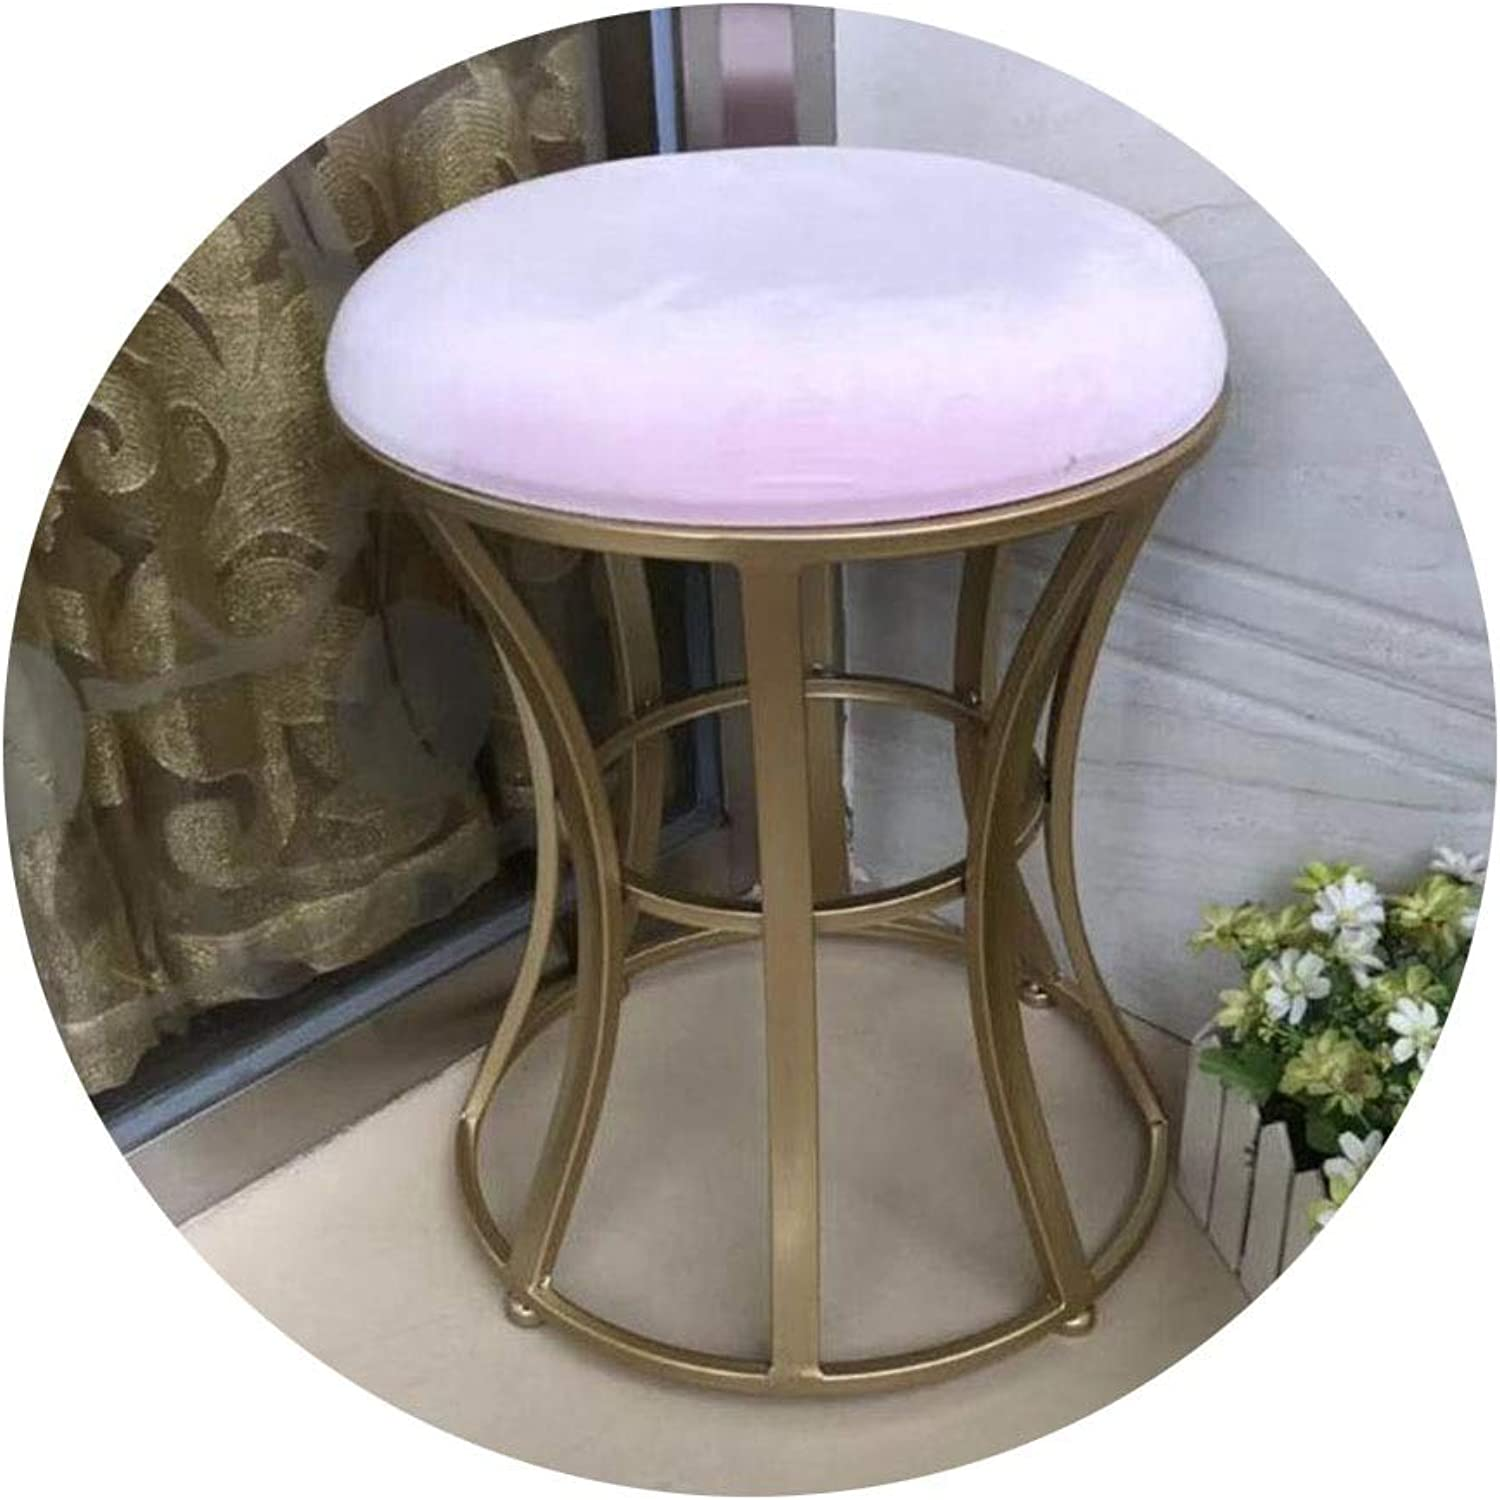 BYCSD Wrought Iron golden Bedroom Dressing Stool Girl Vanity Stool Modern Minimalist Small Round Stool Fitting Room (color   Light Pink)